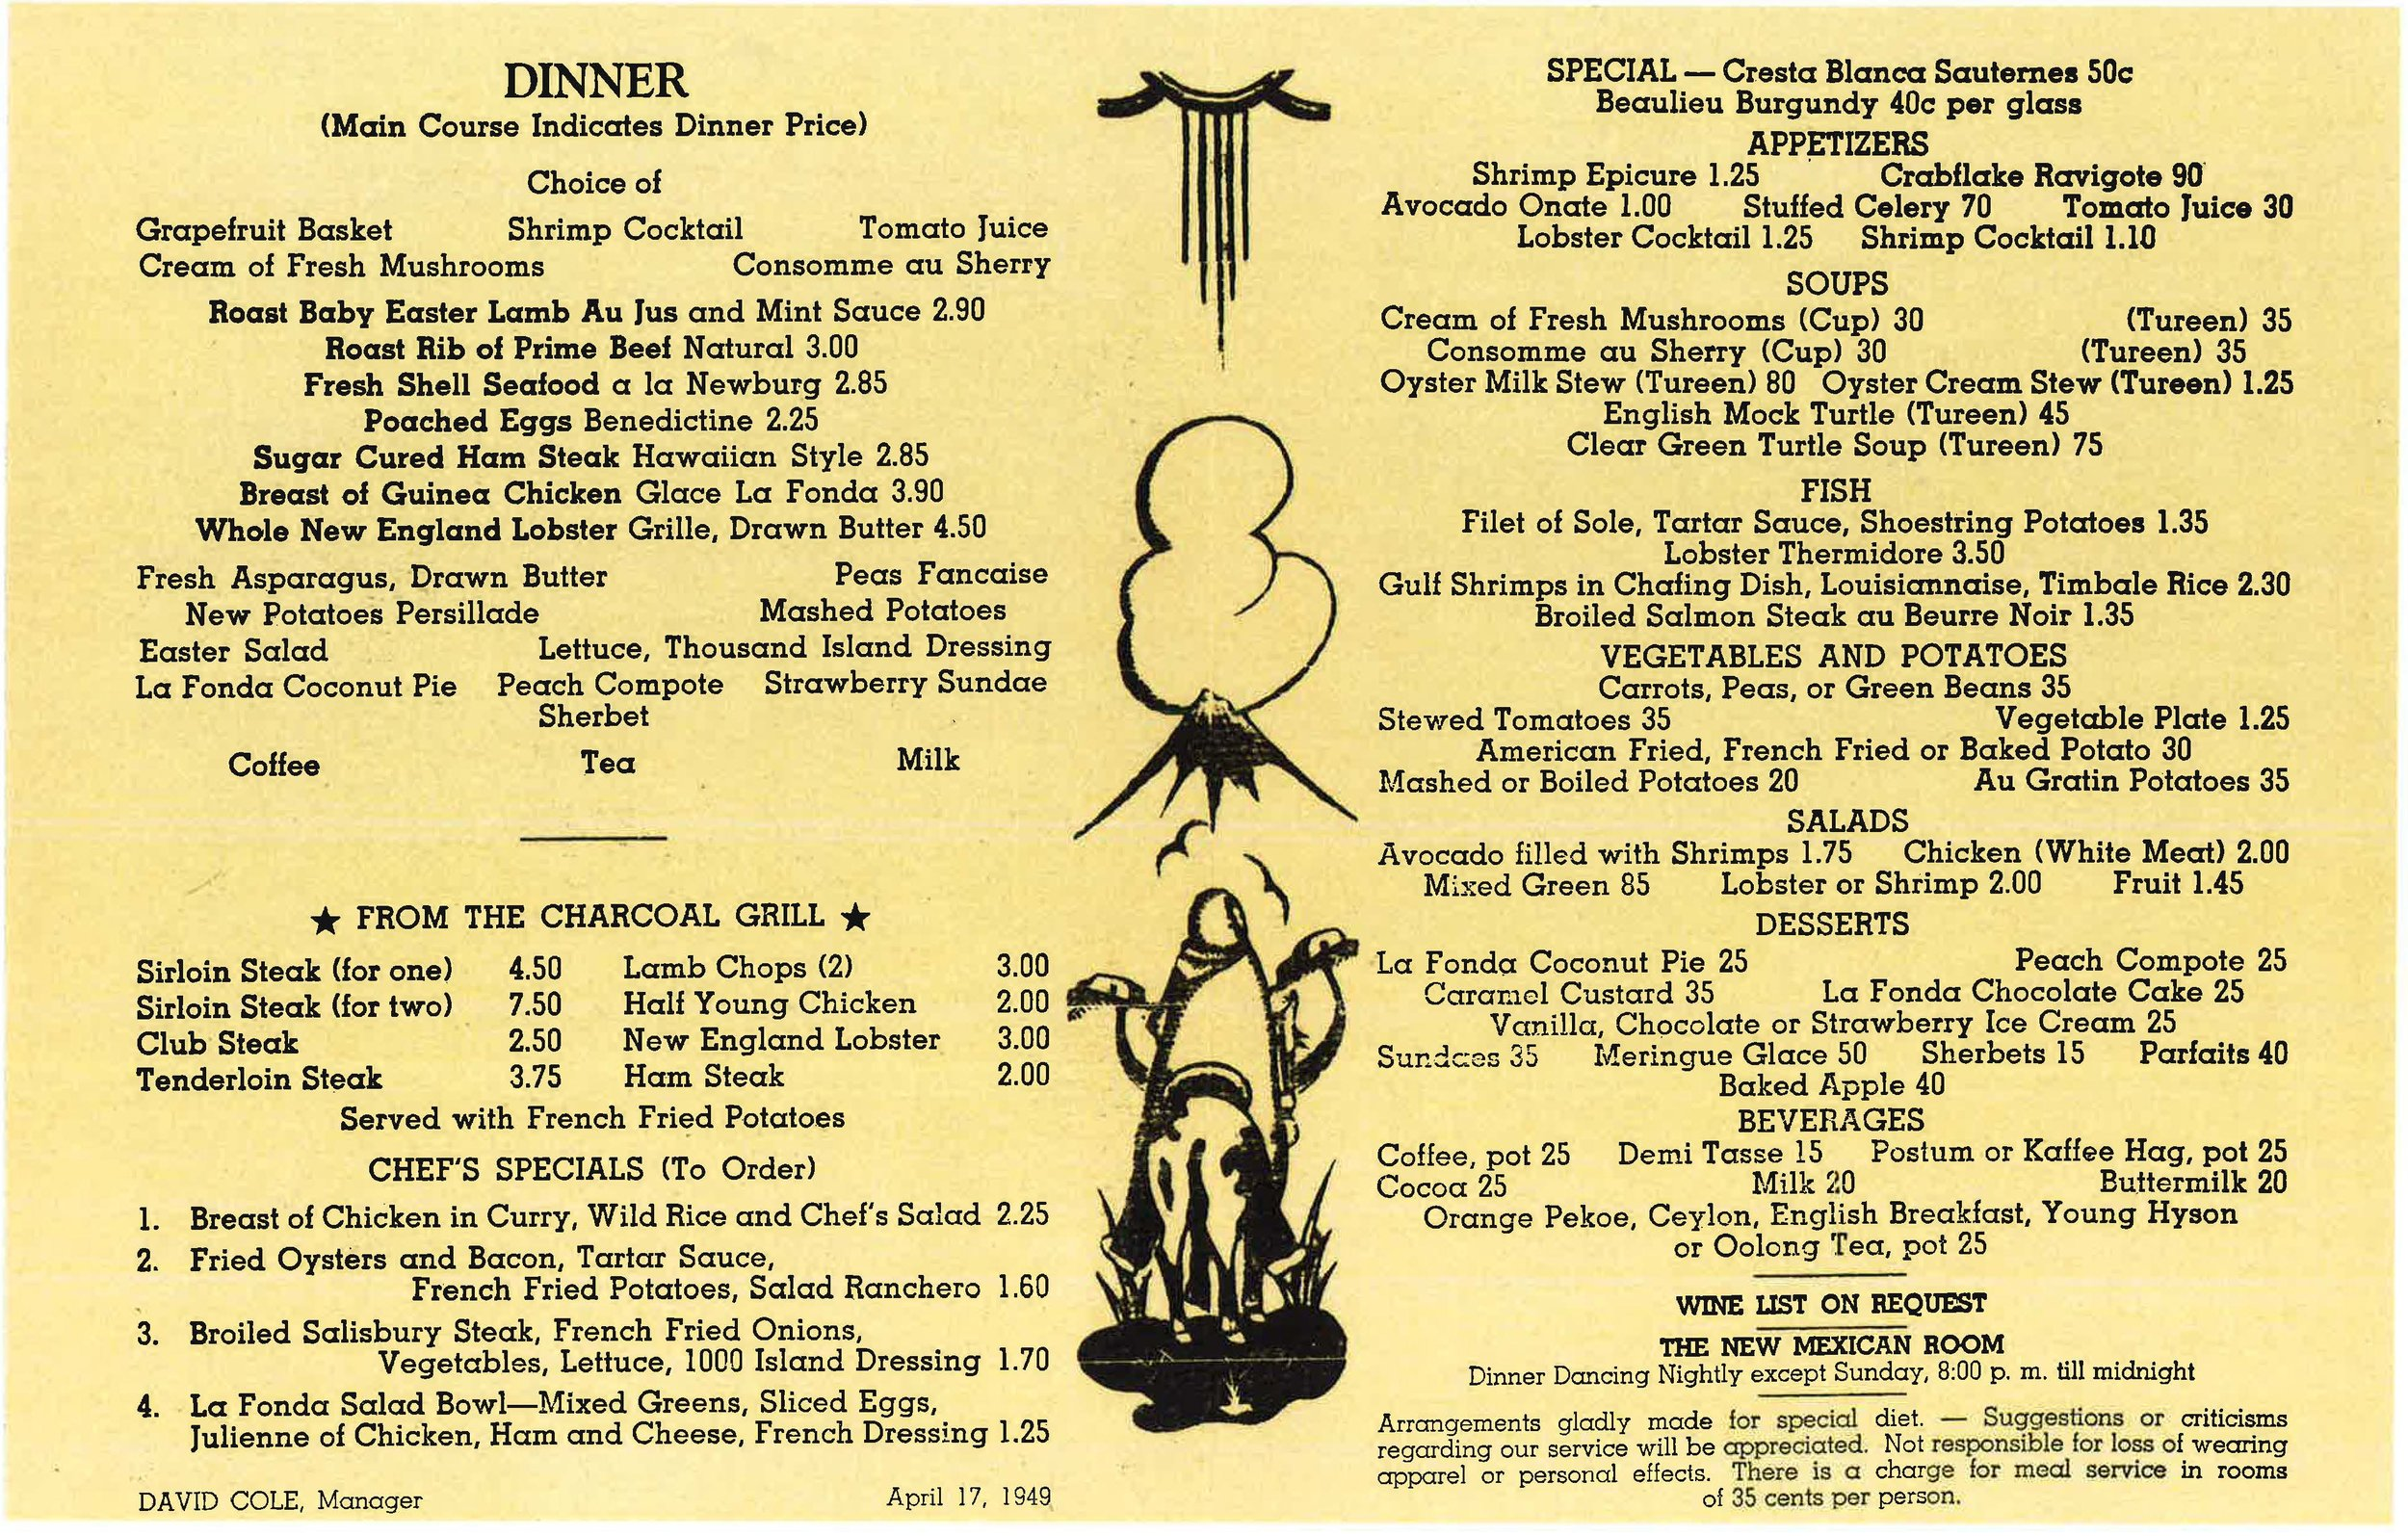 Santa Fe La Fonda in Old Santa Fe Dinner Menu_Page_2.jpg